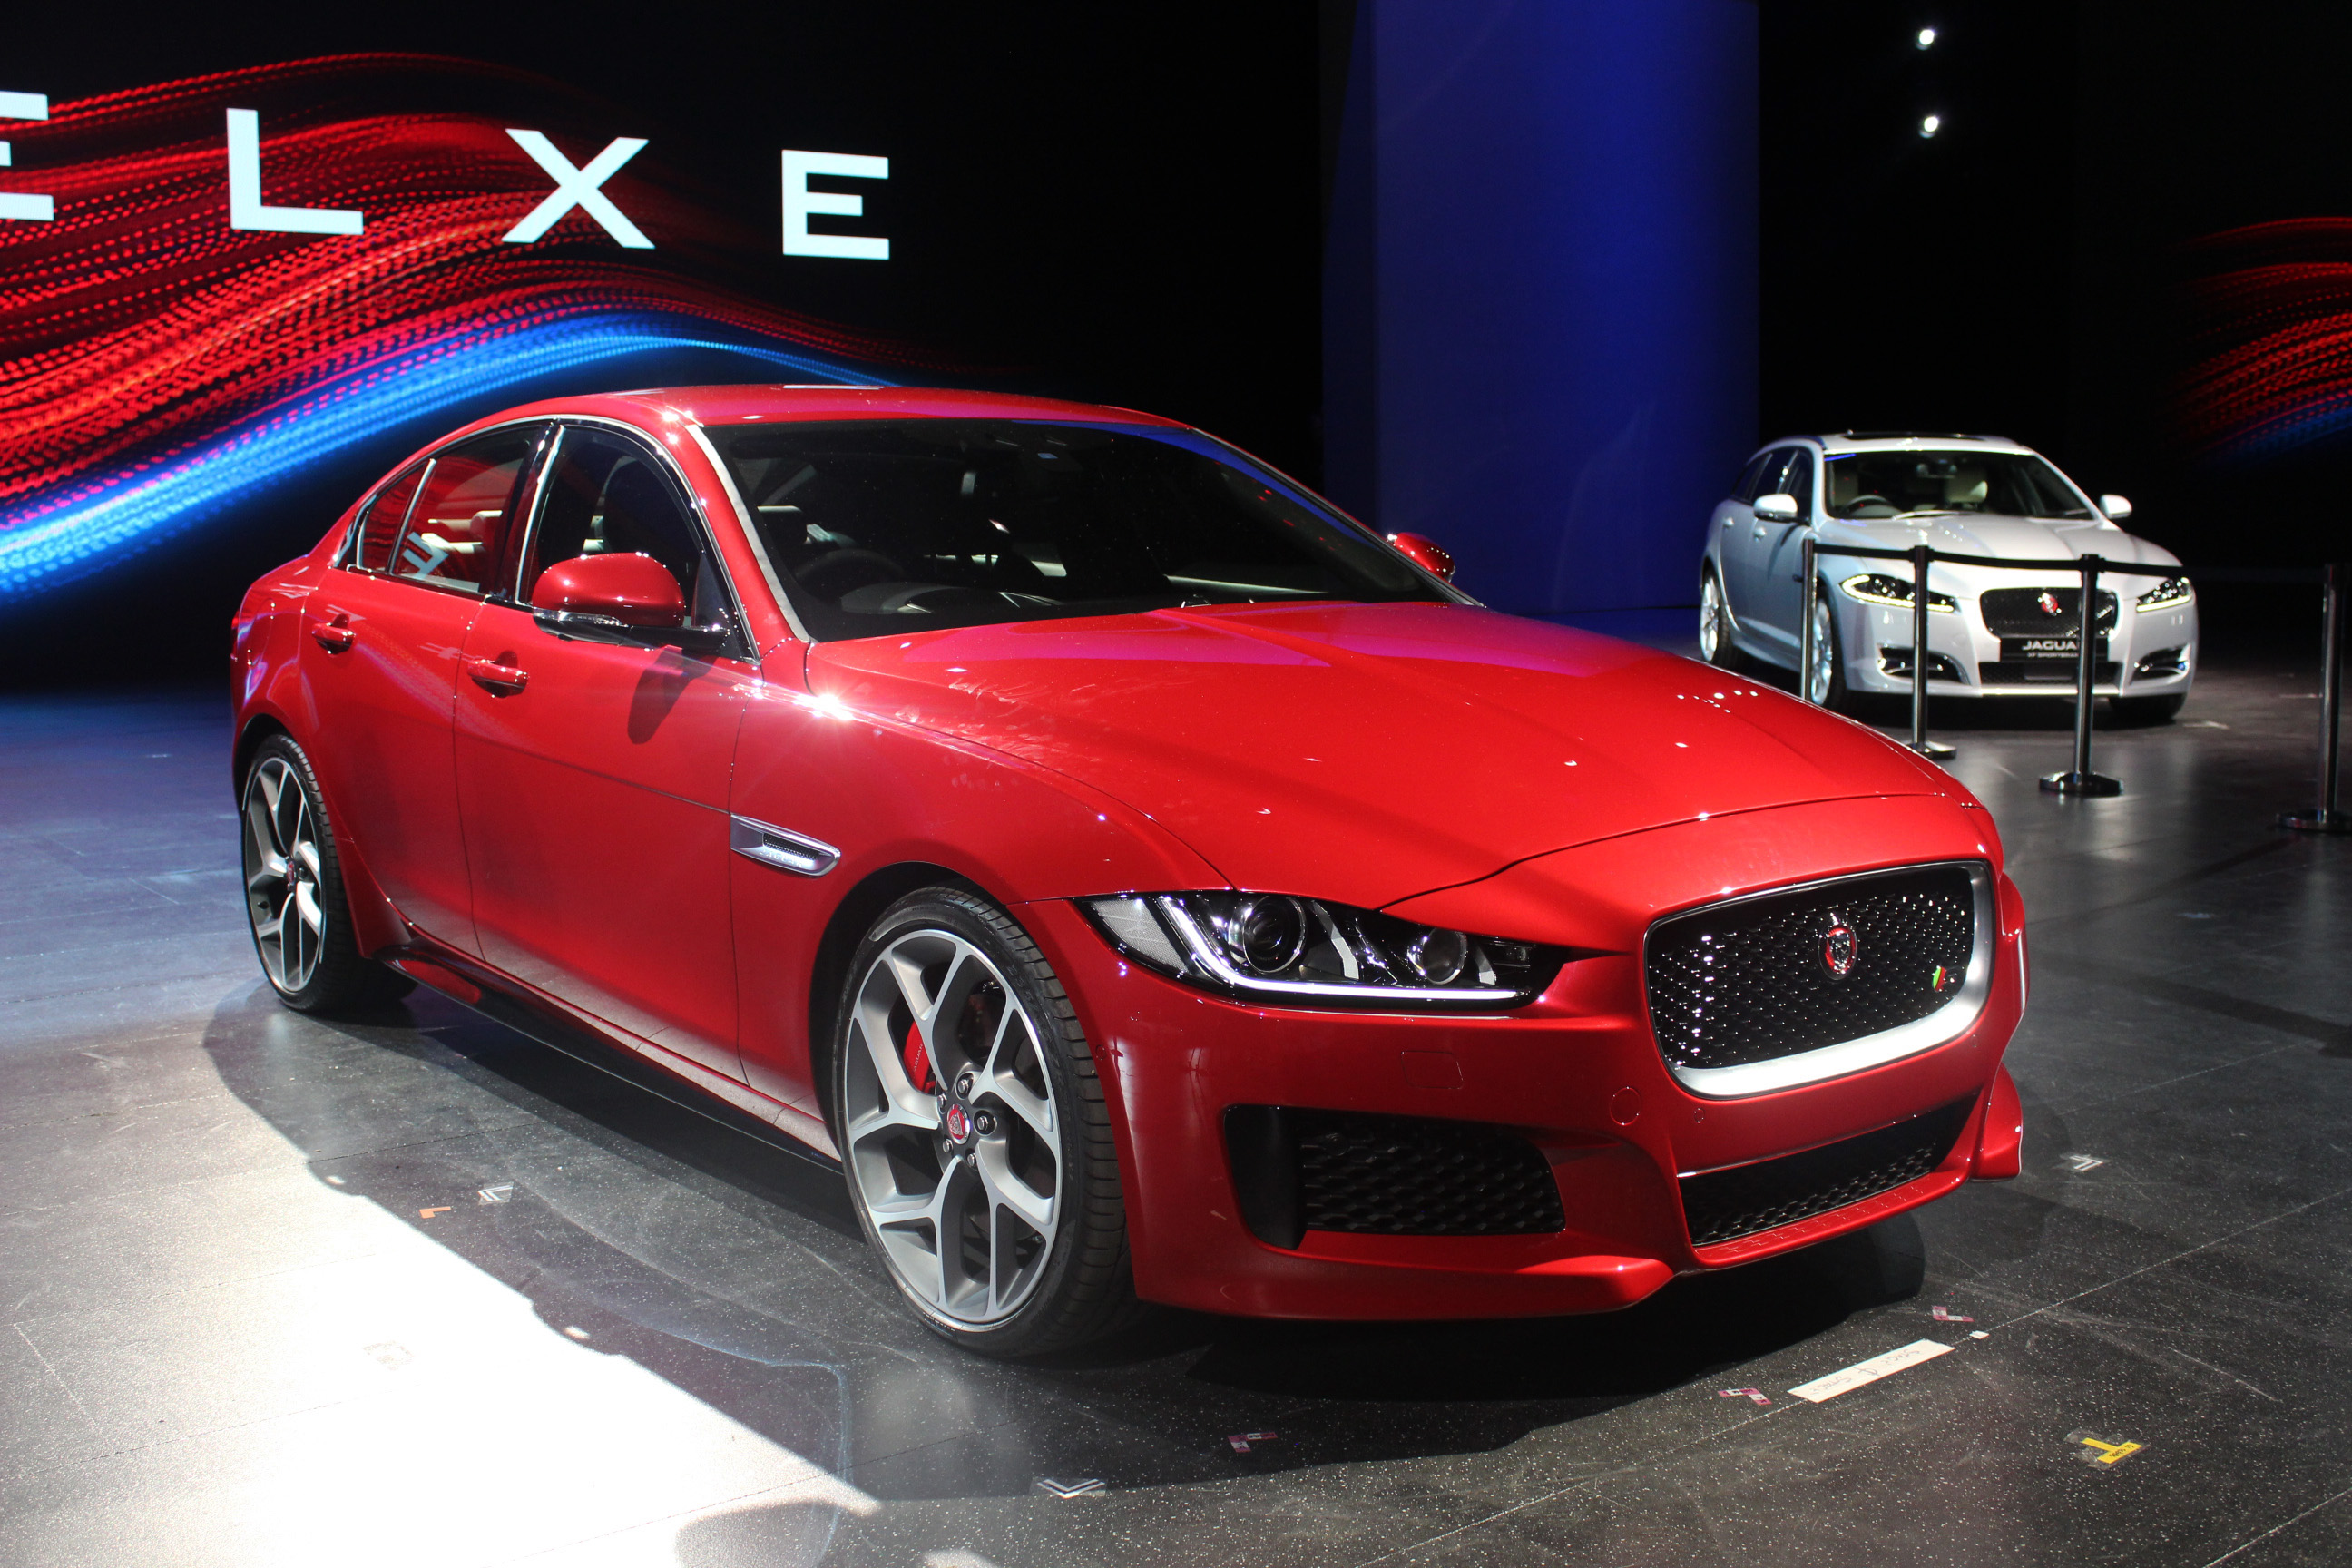 vid o jaguar xe caradisiac tait londres pour la pr sentation officielle. Black Bedroom Furniture Sets. Home Design Ideas